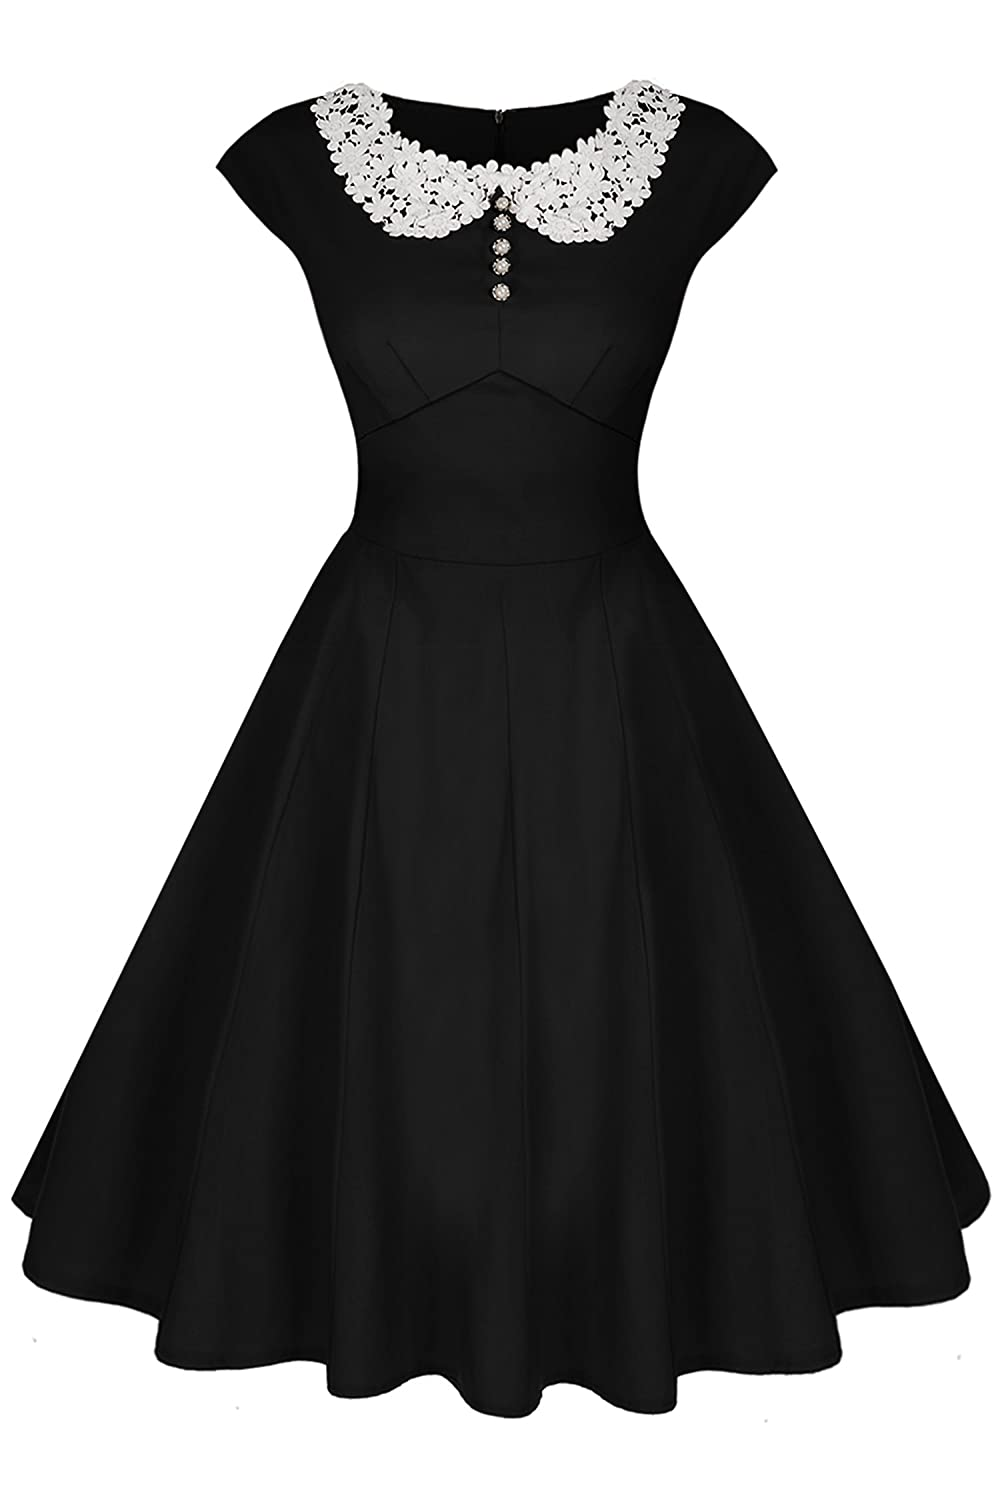 1960s Style Dresses- Retro Inspired Fashion Audrey Hepburn Style 1940s Rockabilly Evening Dress  AT vintagedancer.com